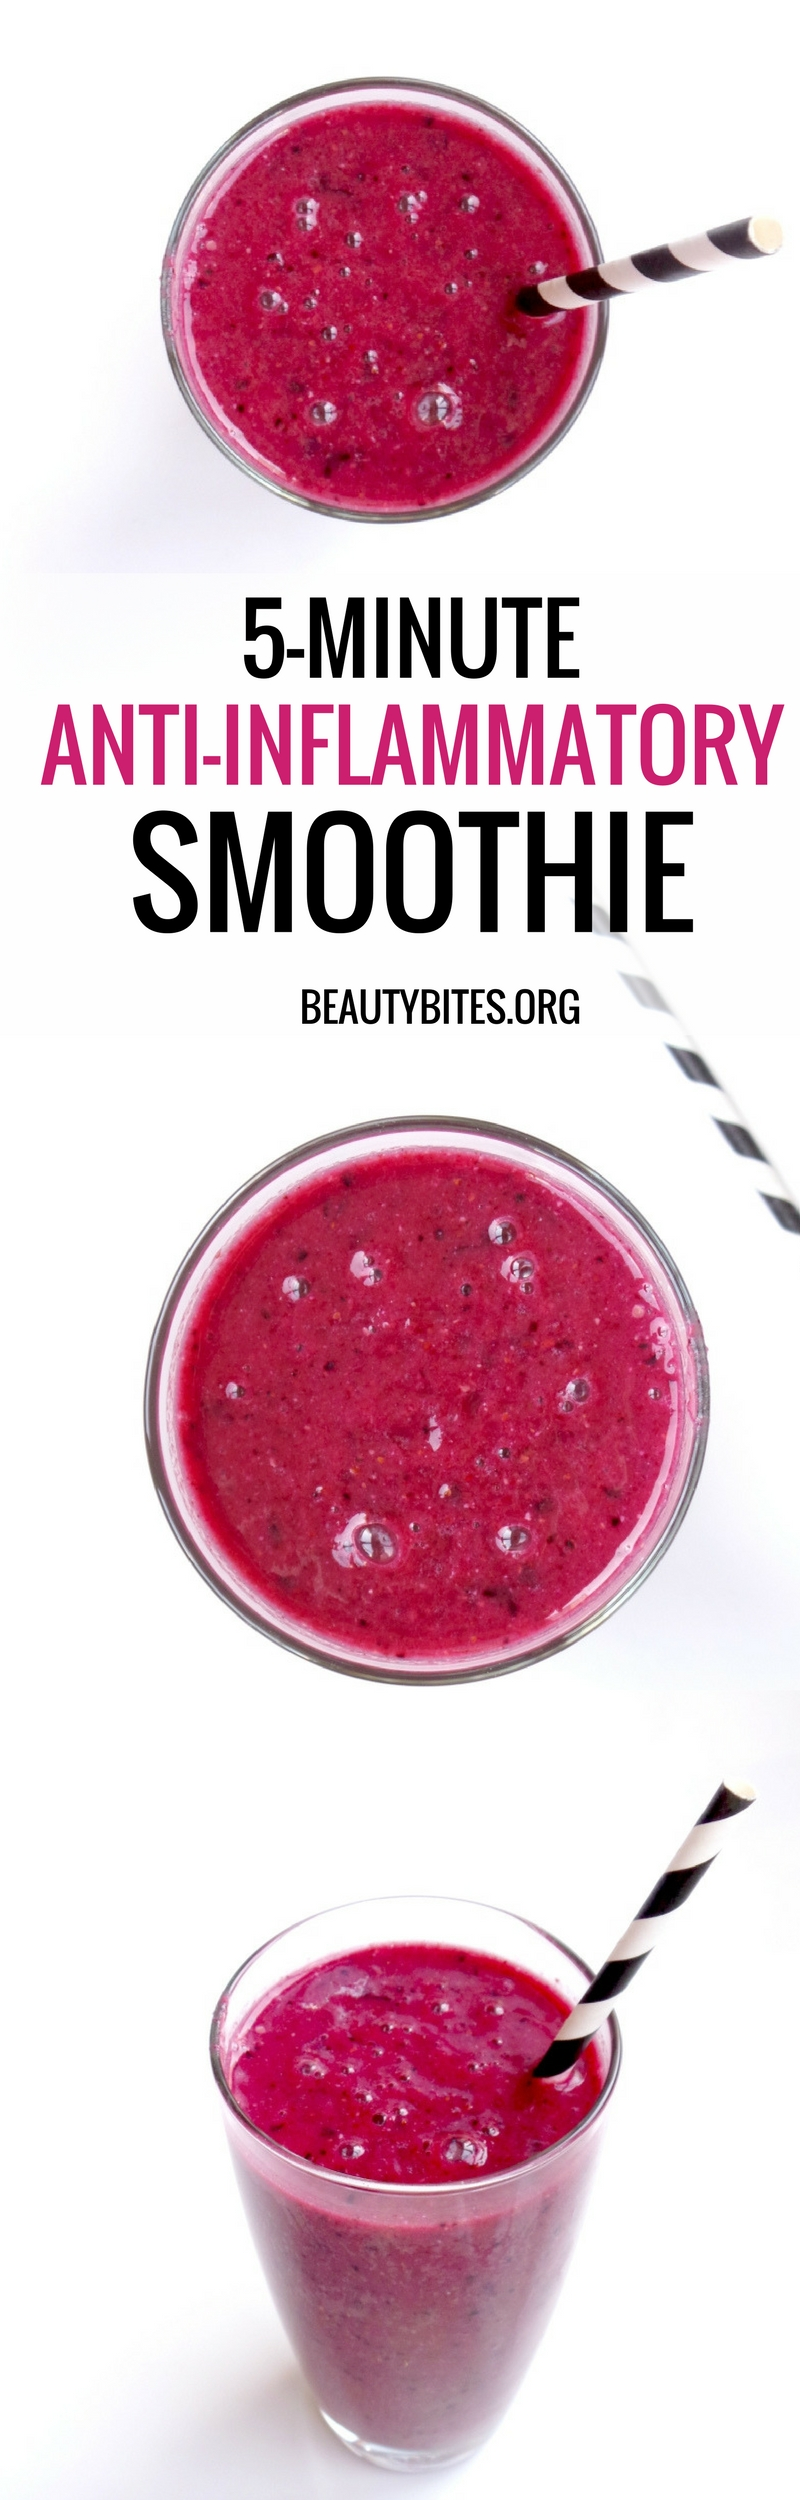 5-minute anti-inflammatory smoothie. Start your mornings with this simple anti-inflammatory recipe or have it as a healthy snack later during the day to easily add more antioxidants to your diet!